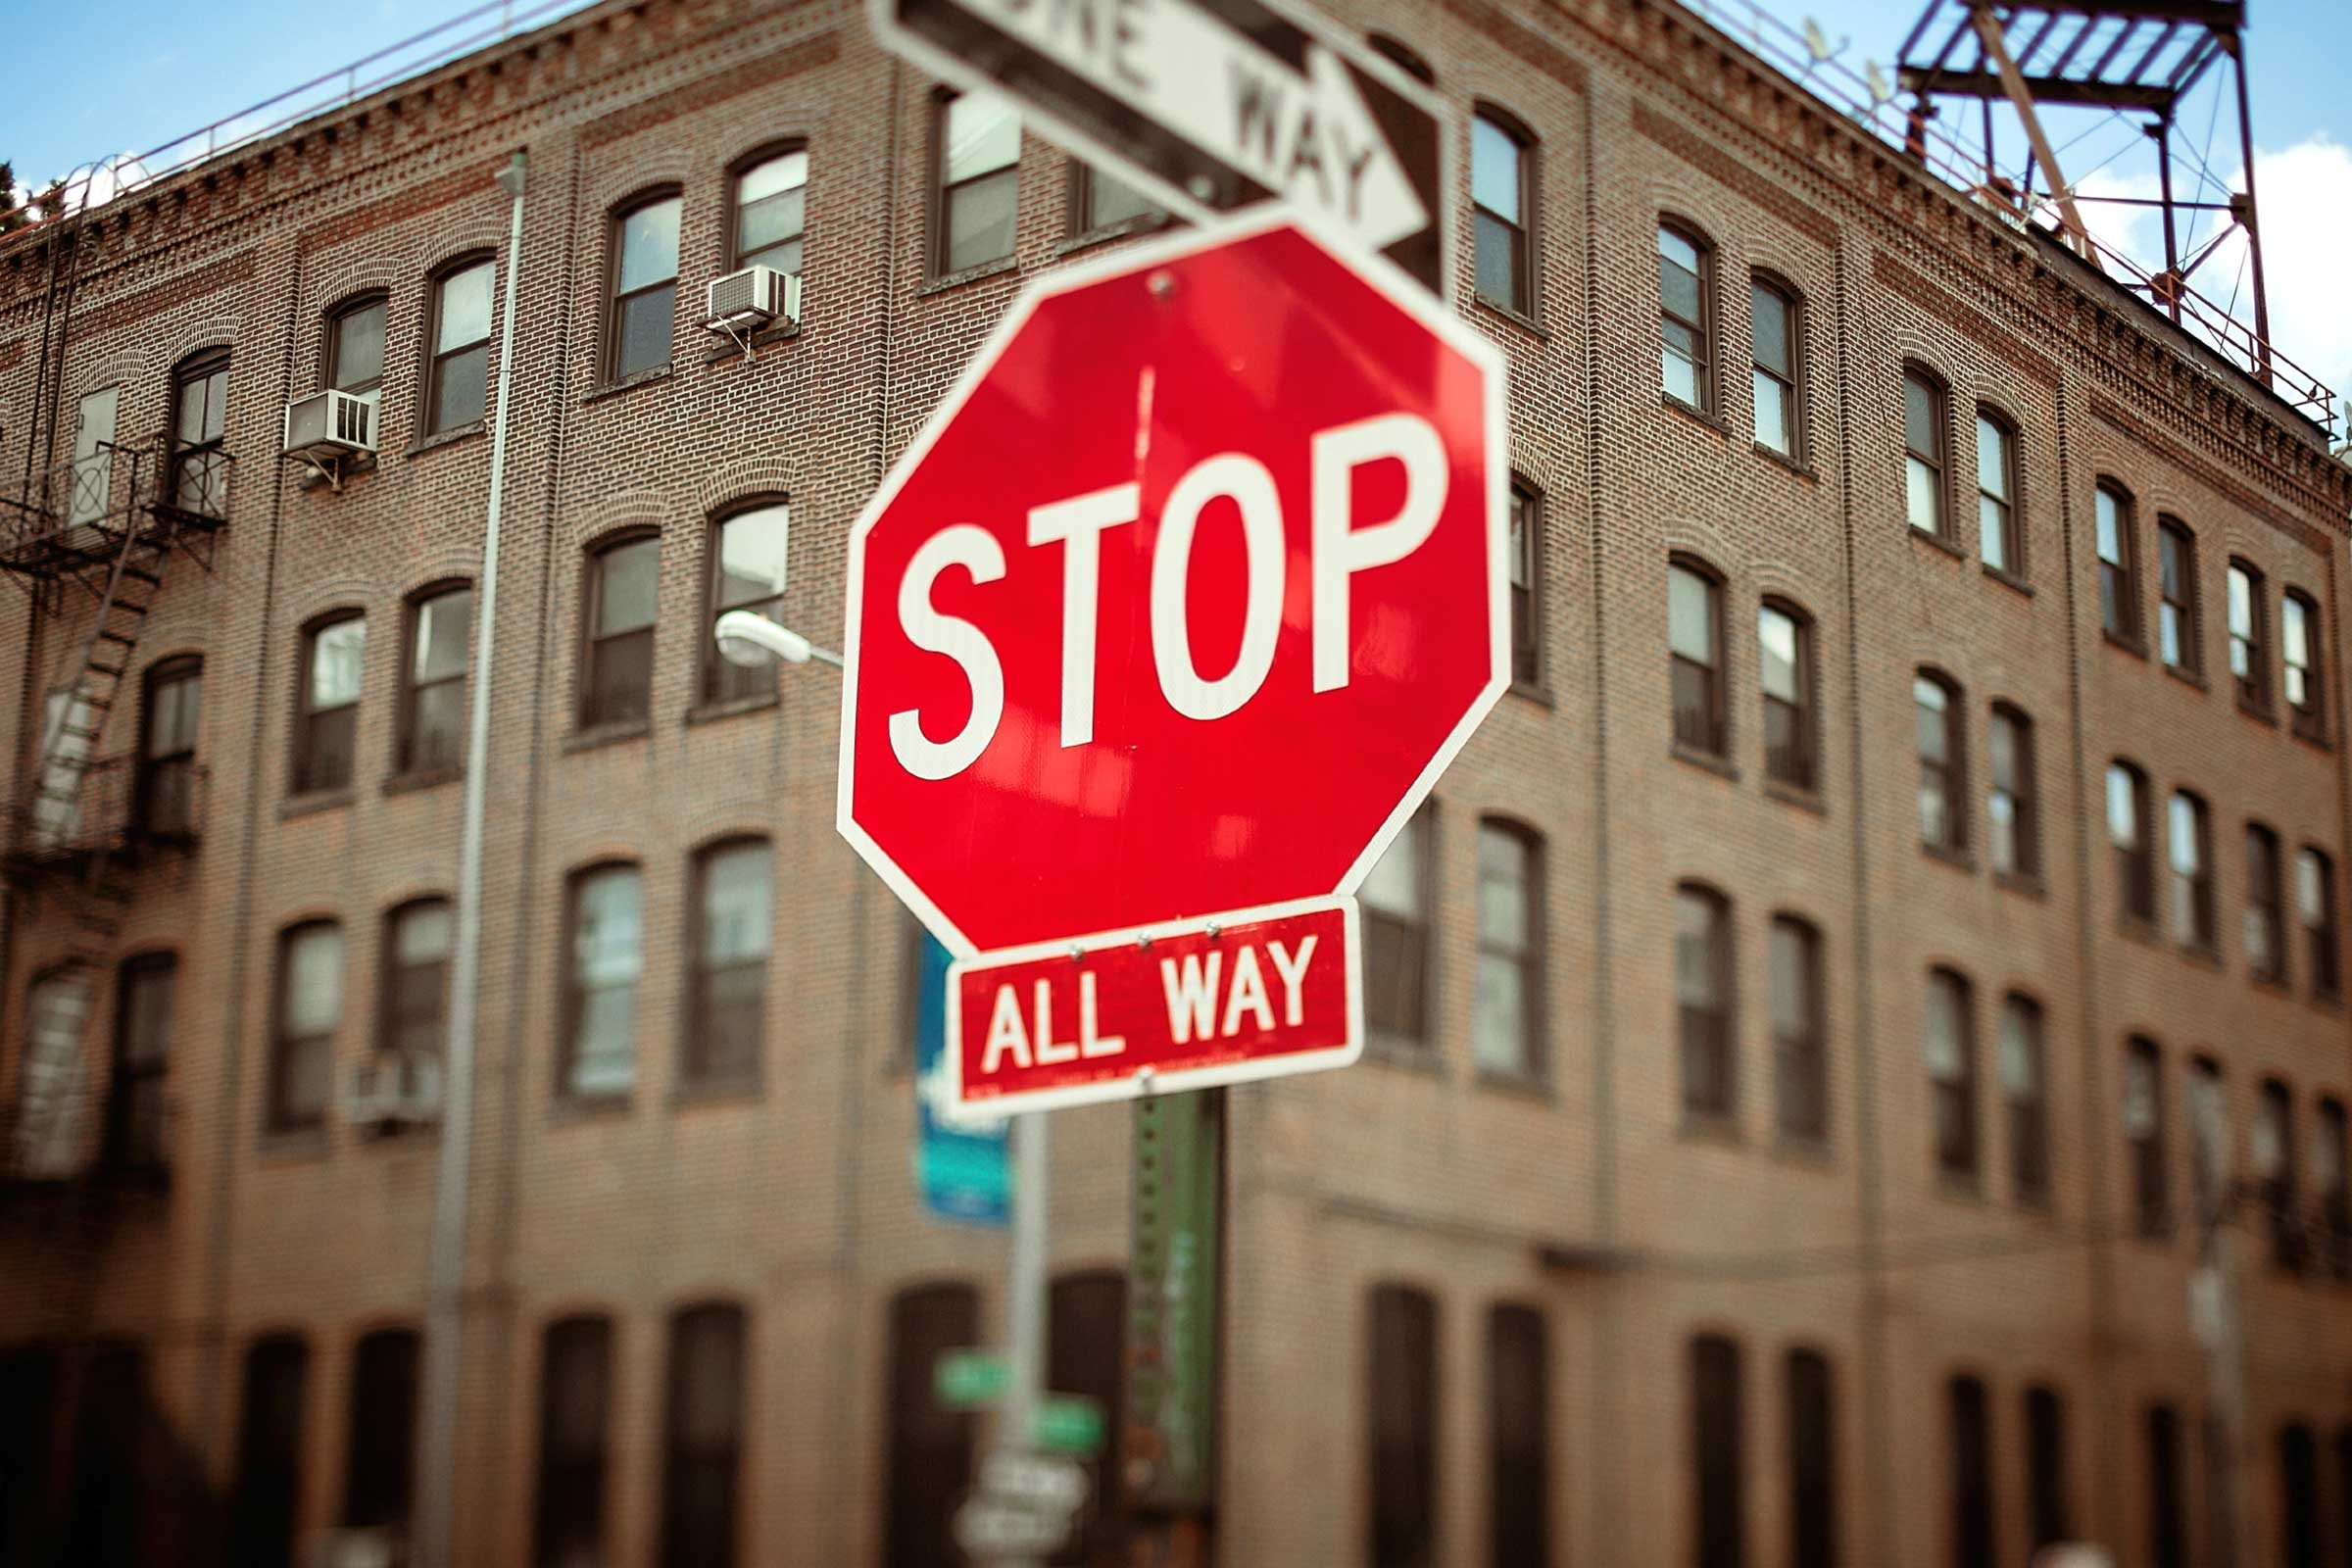 When you find yourself thinking a negative thought, picture a stop sign